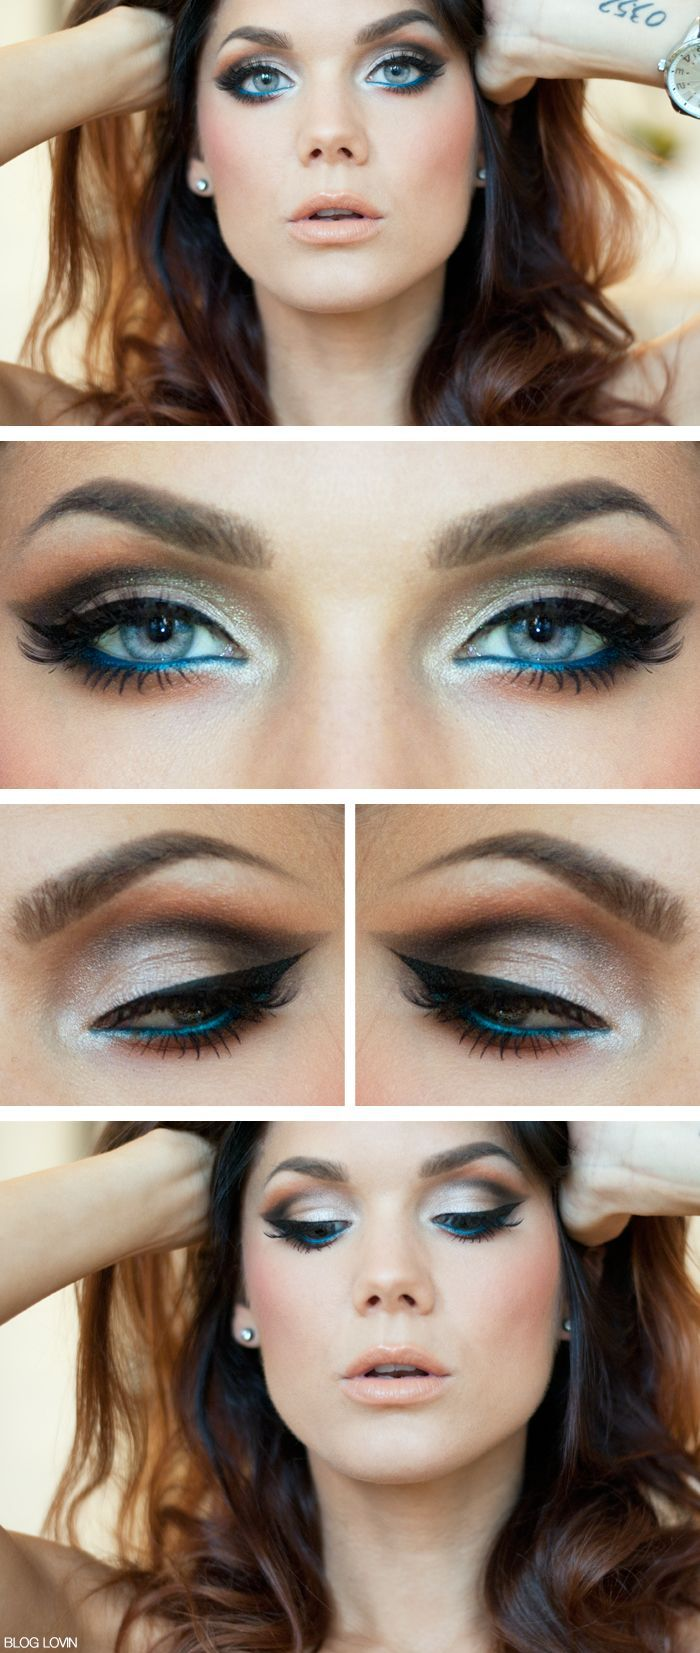 Add a pop to your smokey eye!  Add a teal or cerulean blue eyeliner to your lower lash line